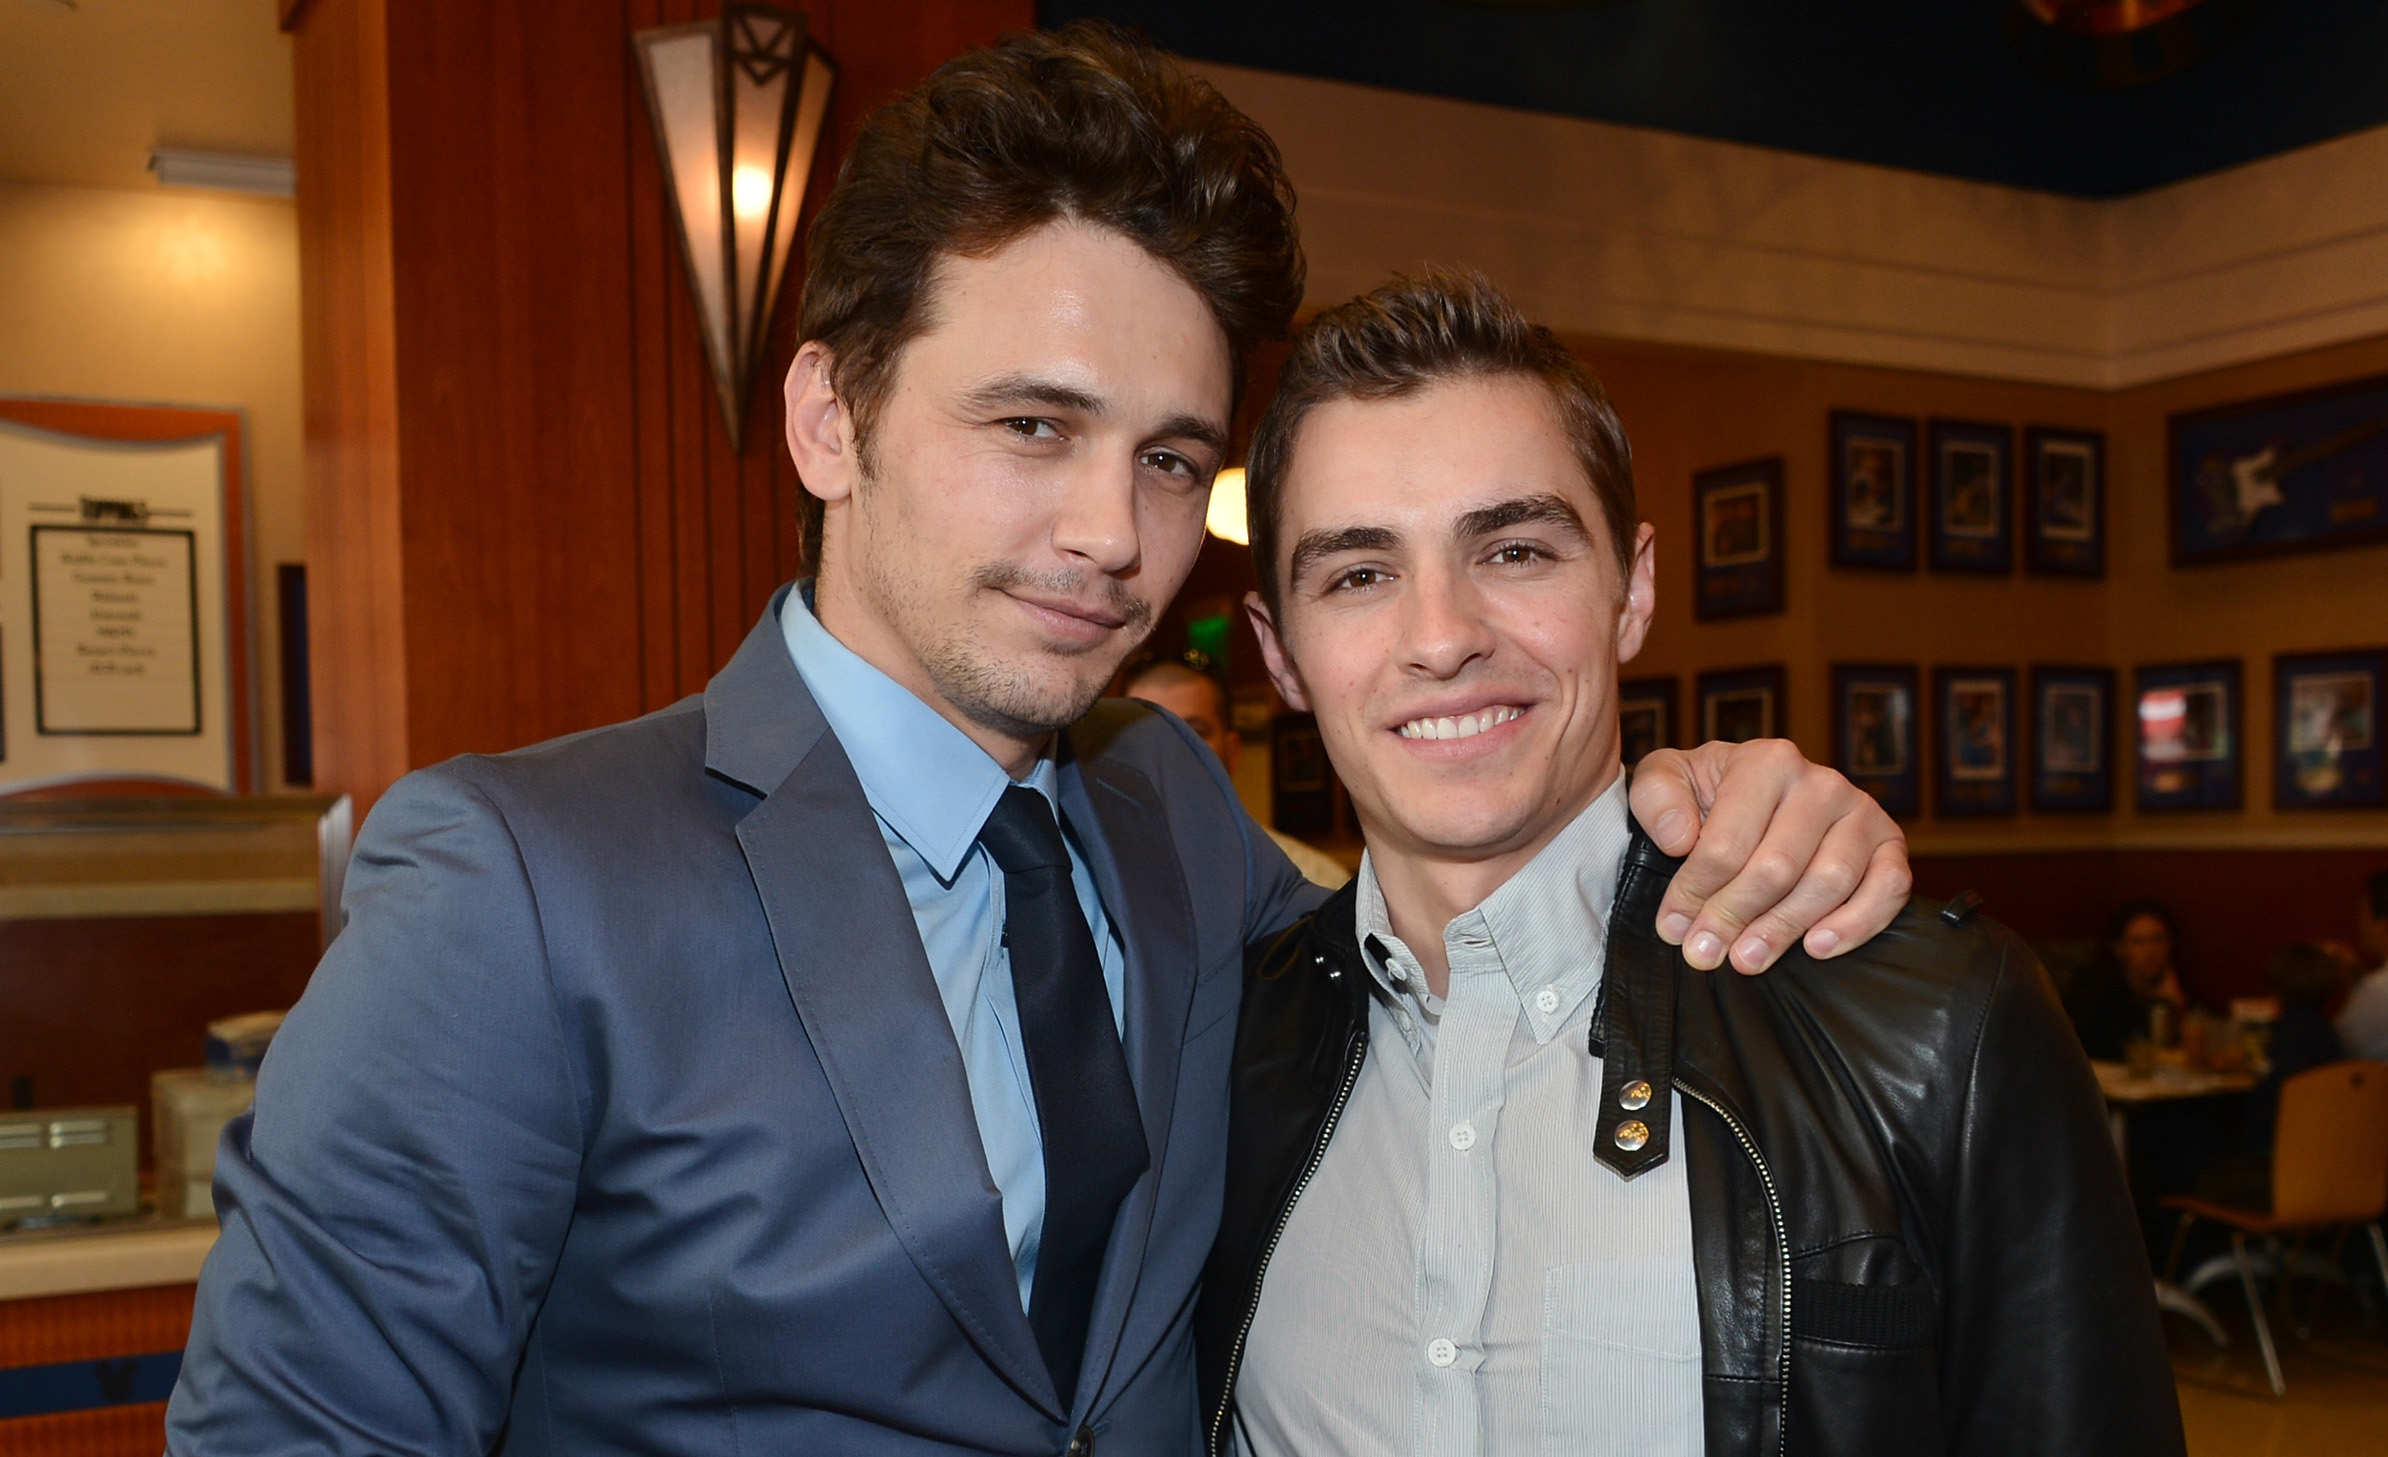 James franco congratulates brother dave franco on - Lopez iturriaga hermanos ...